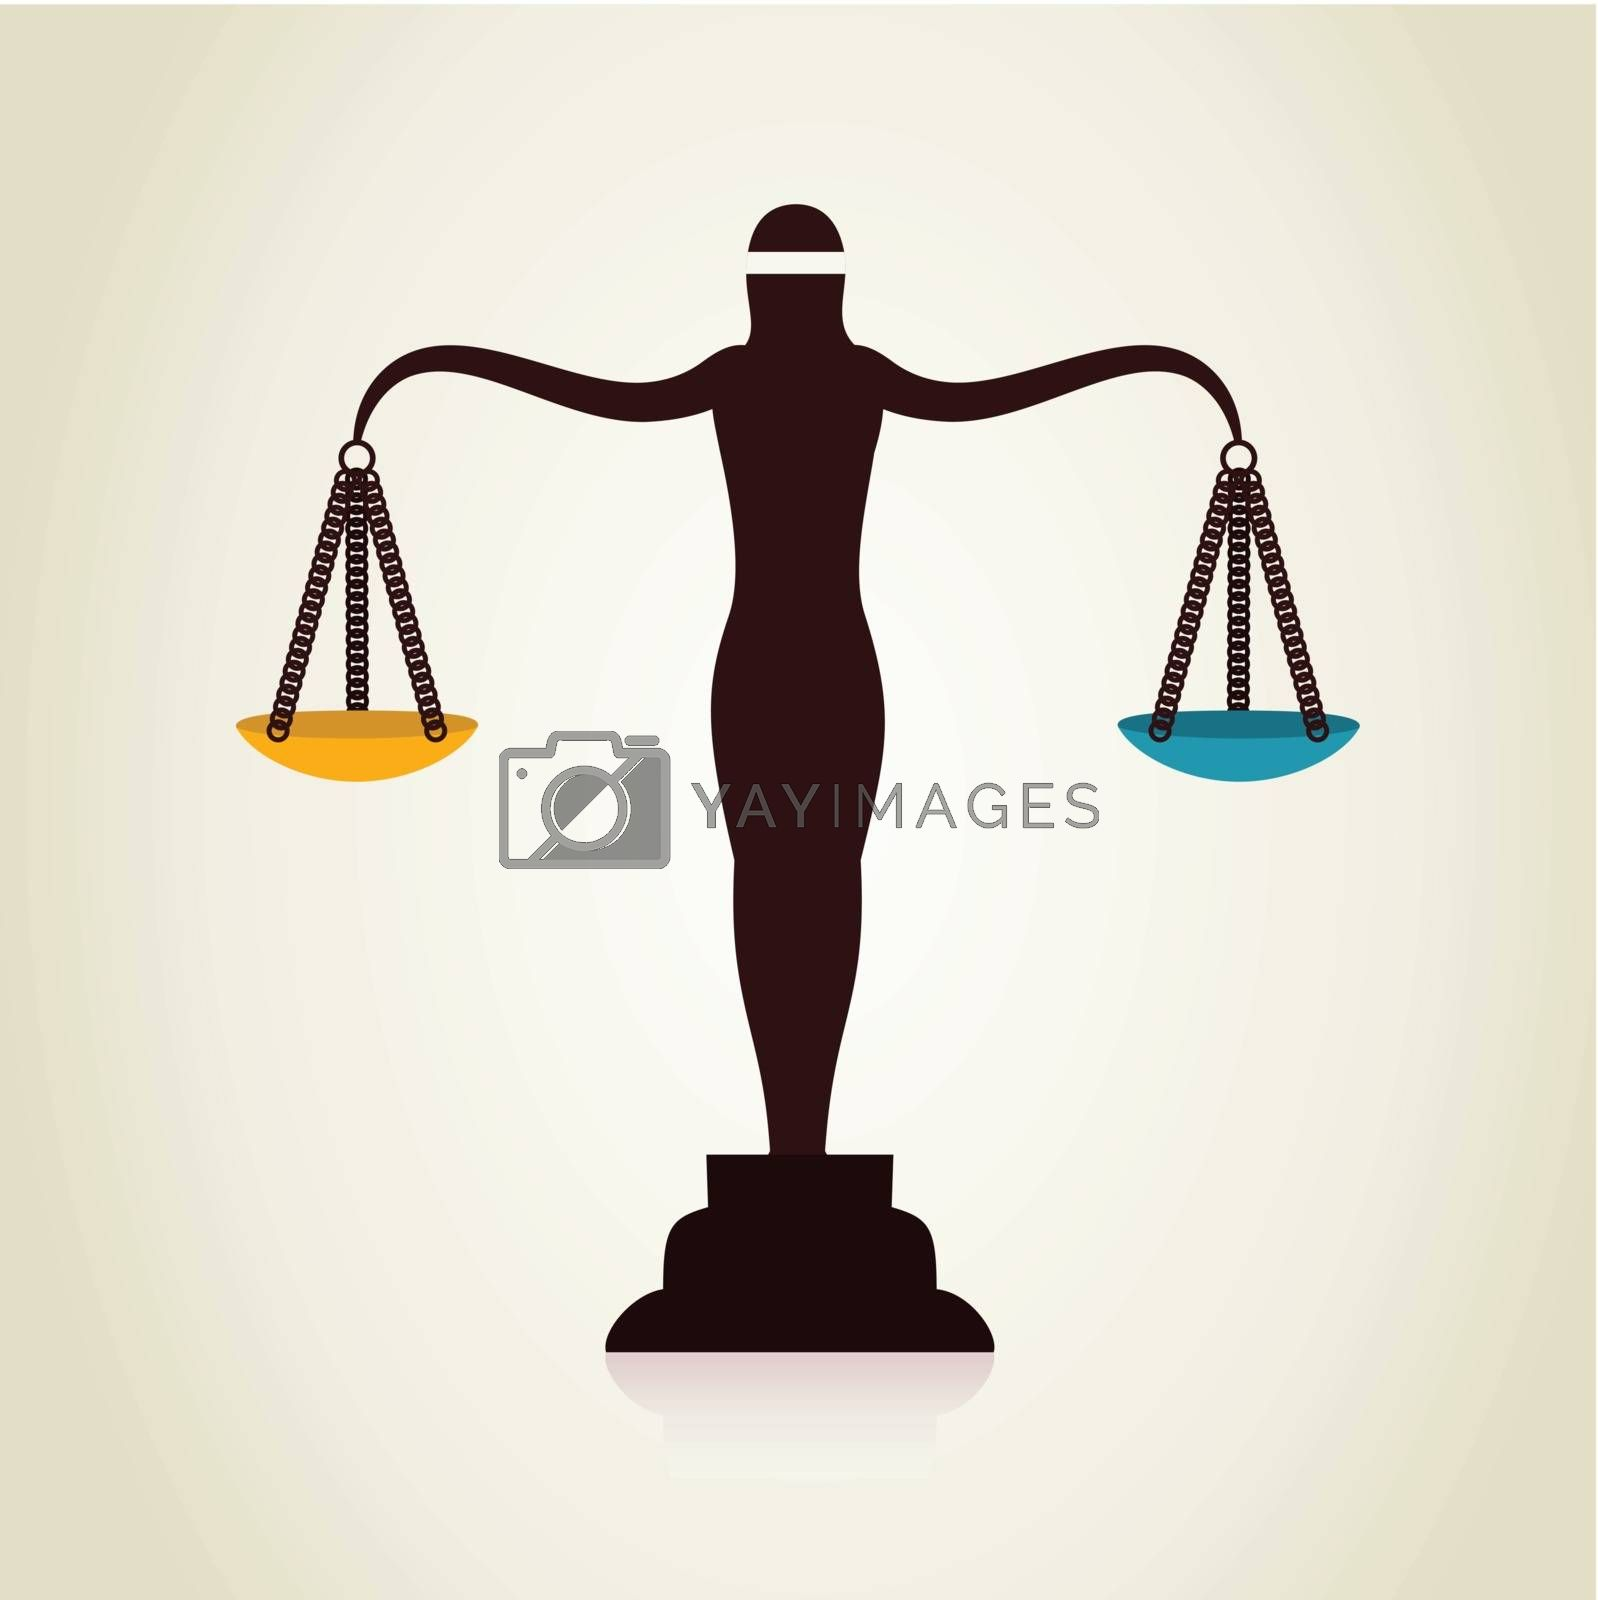 The woman scales blindfold. A vector illustration